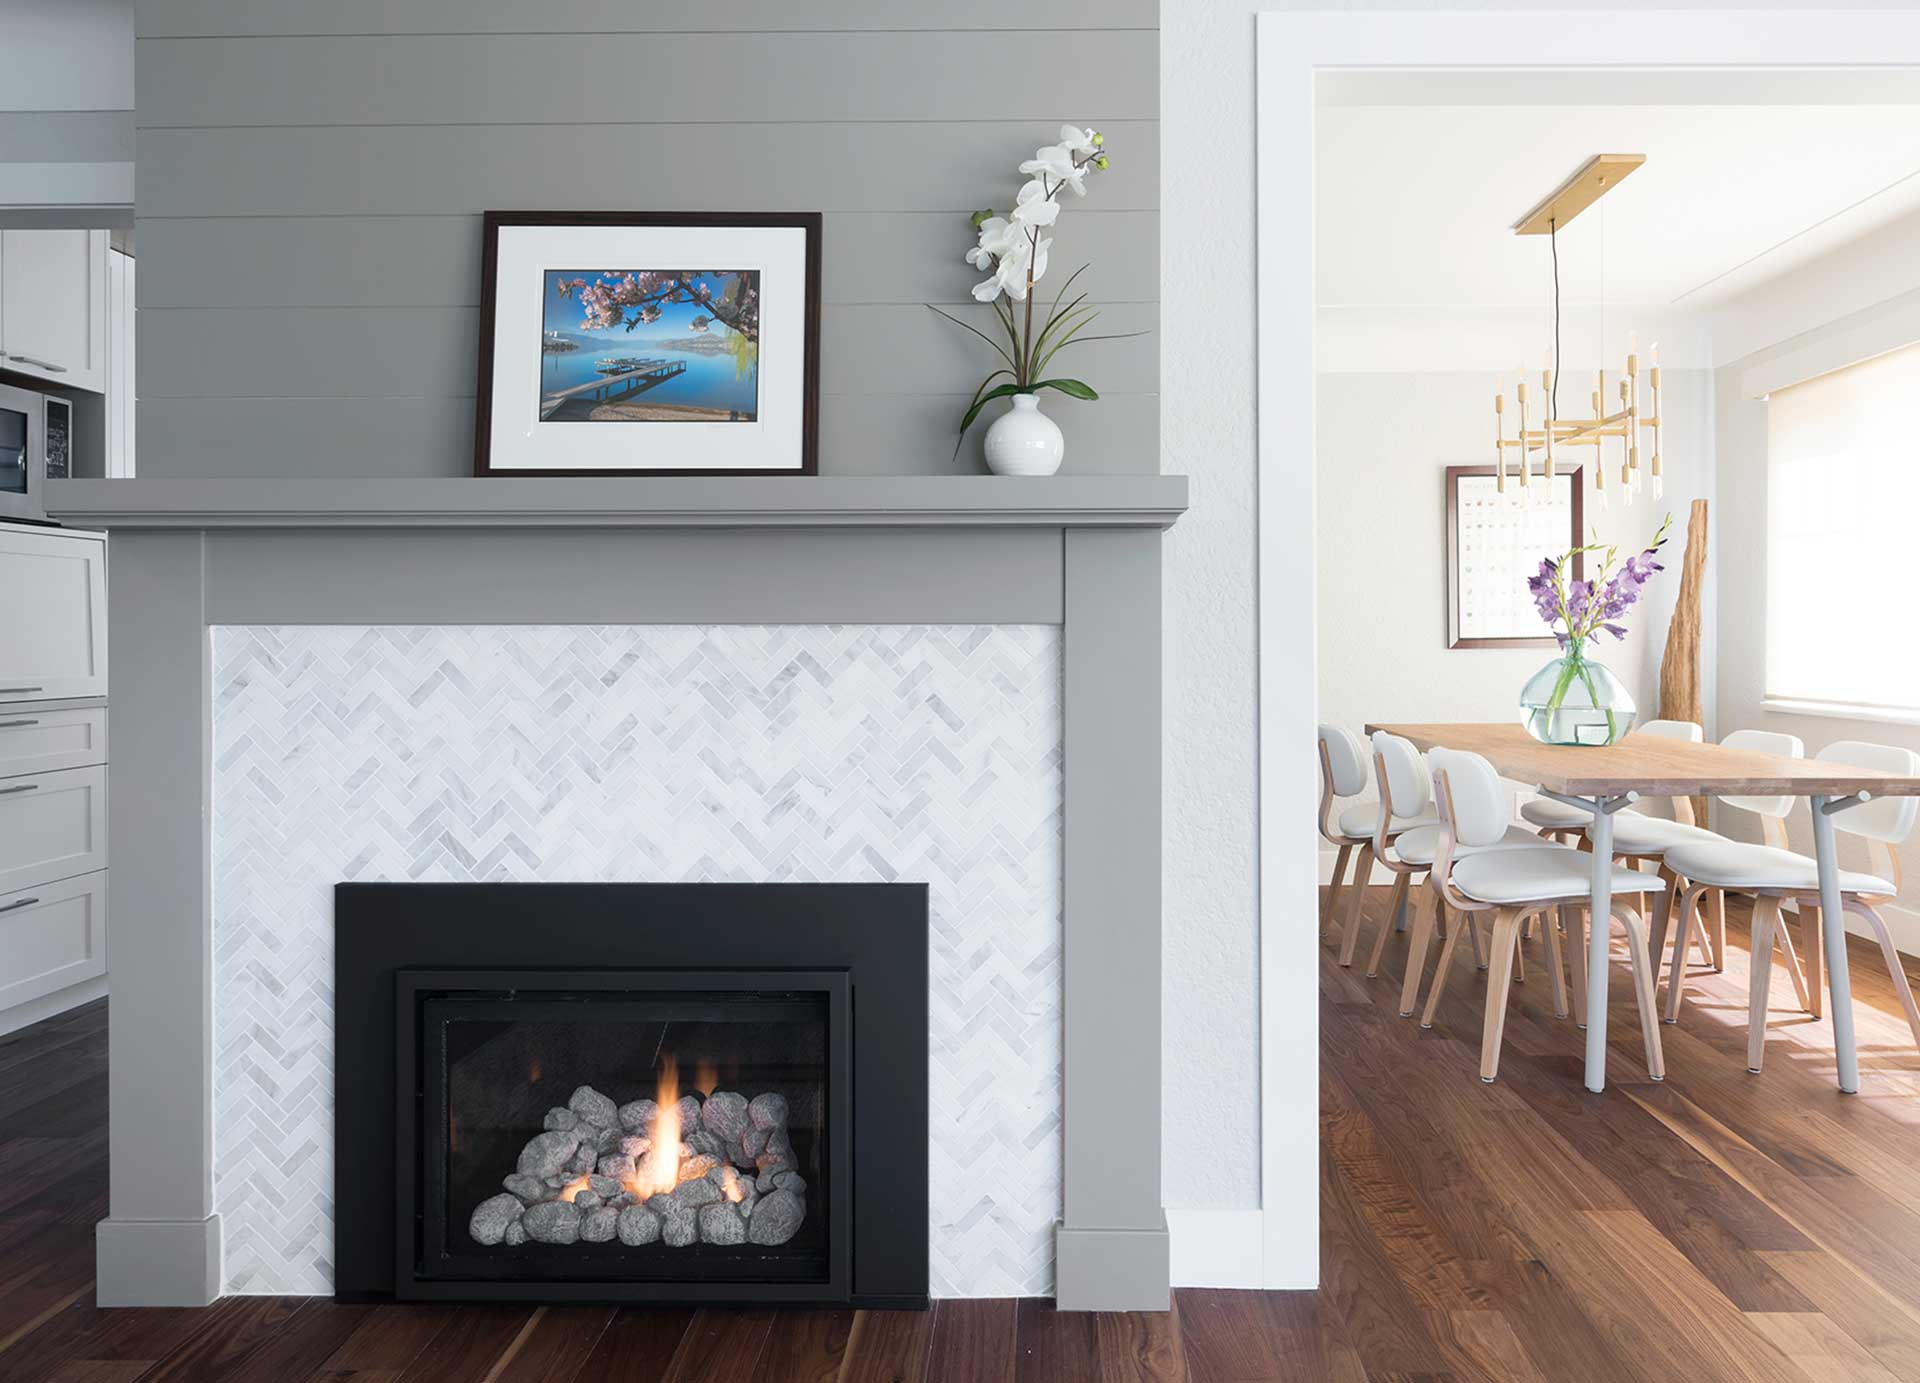 j wood stunning tile inspiration pin resurfacing absolutely fireplace an makes